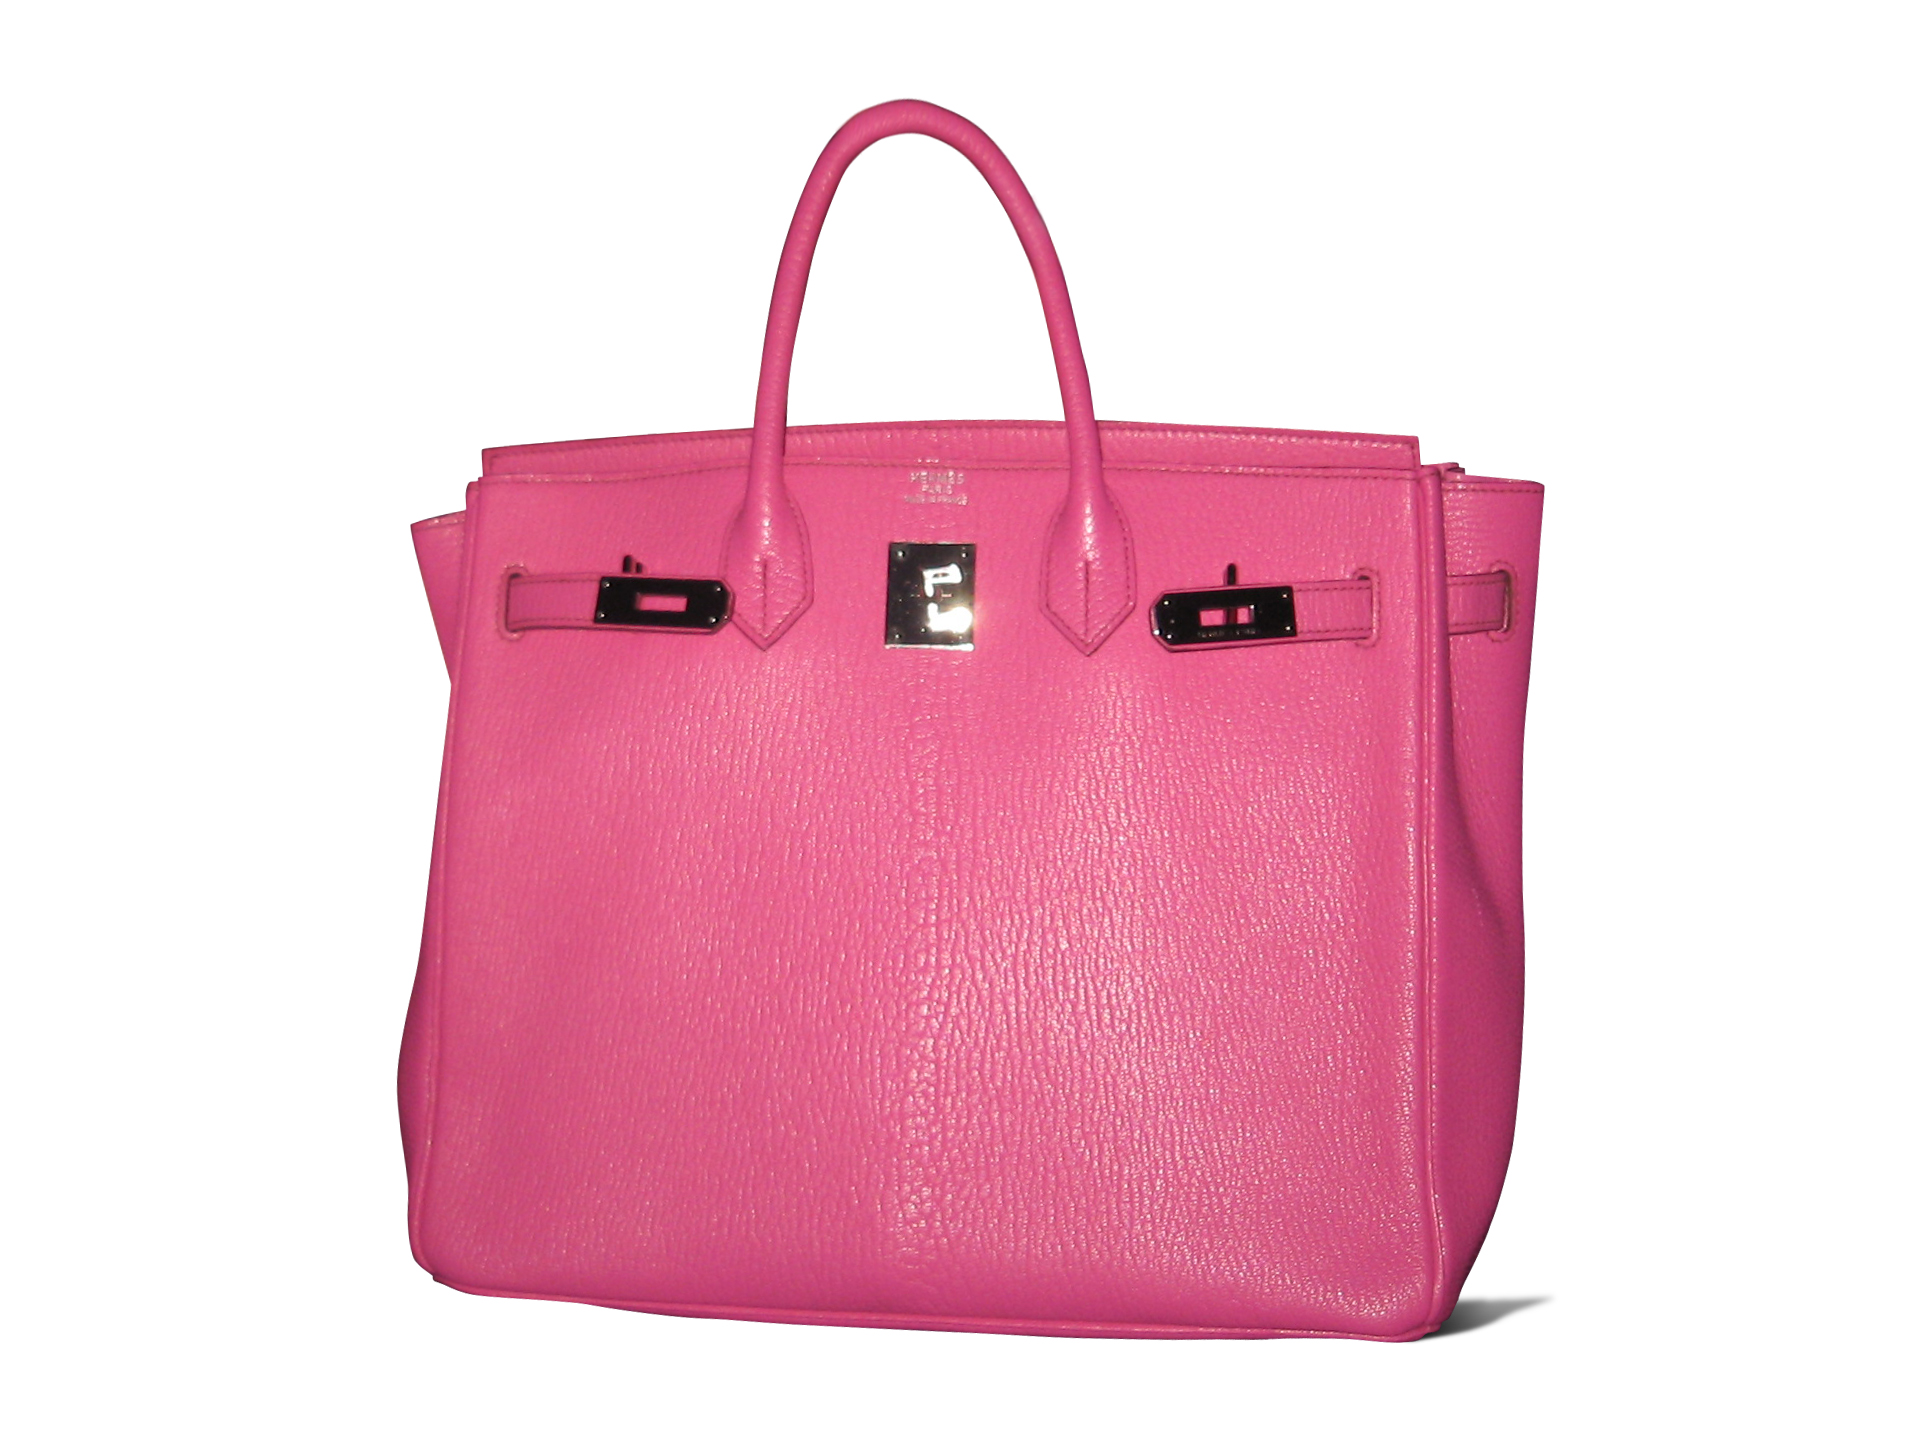 bag hermes - Birkin bag - Wikipedia, the free encyclopedia